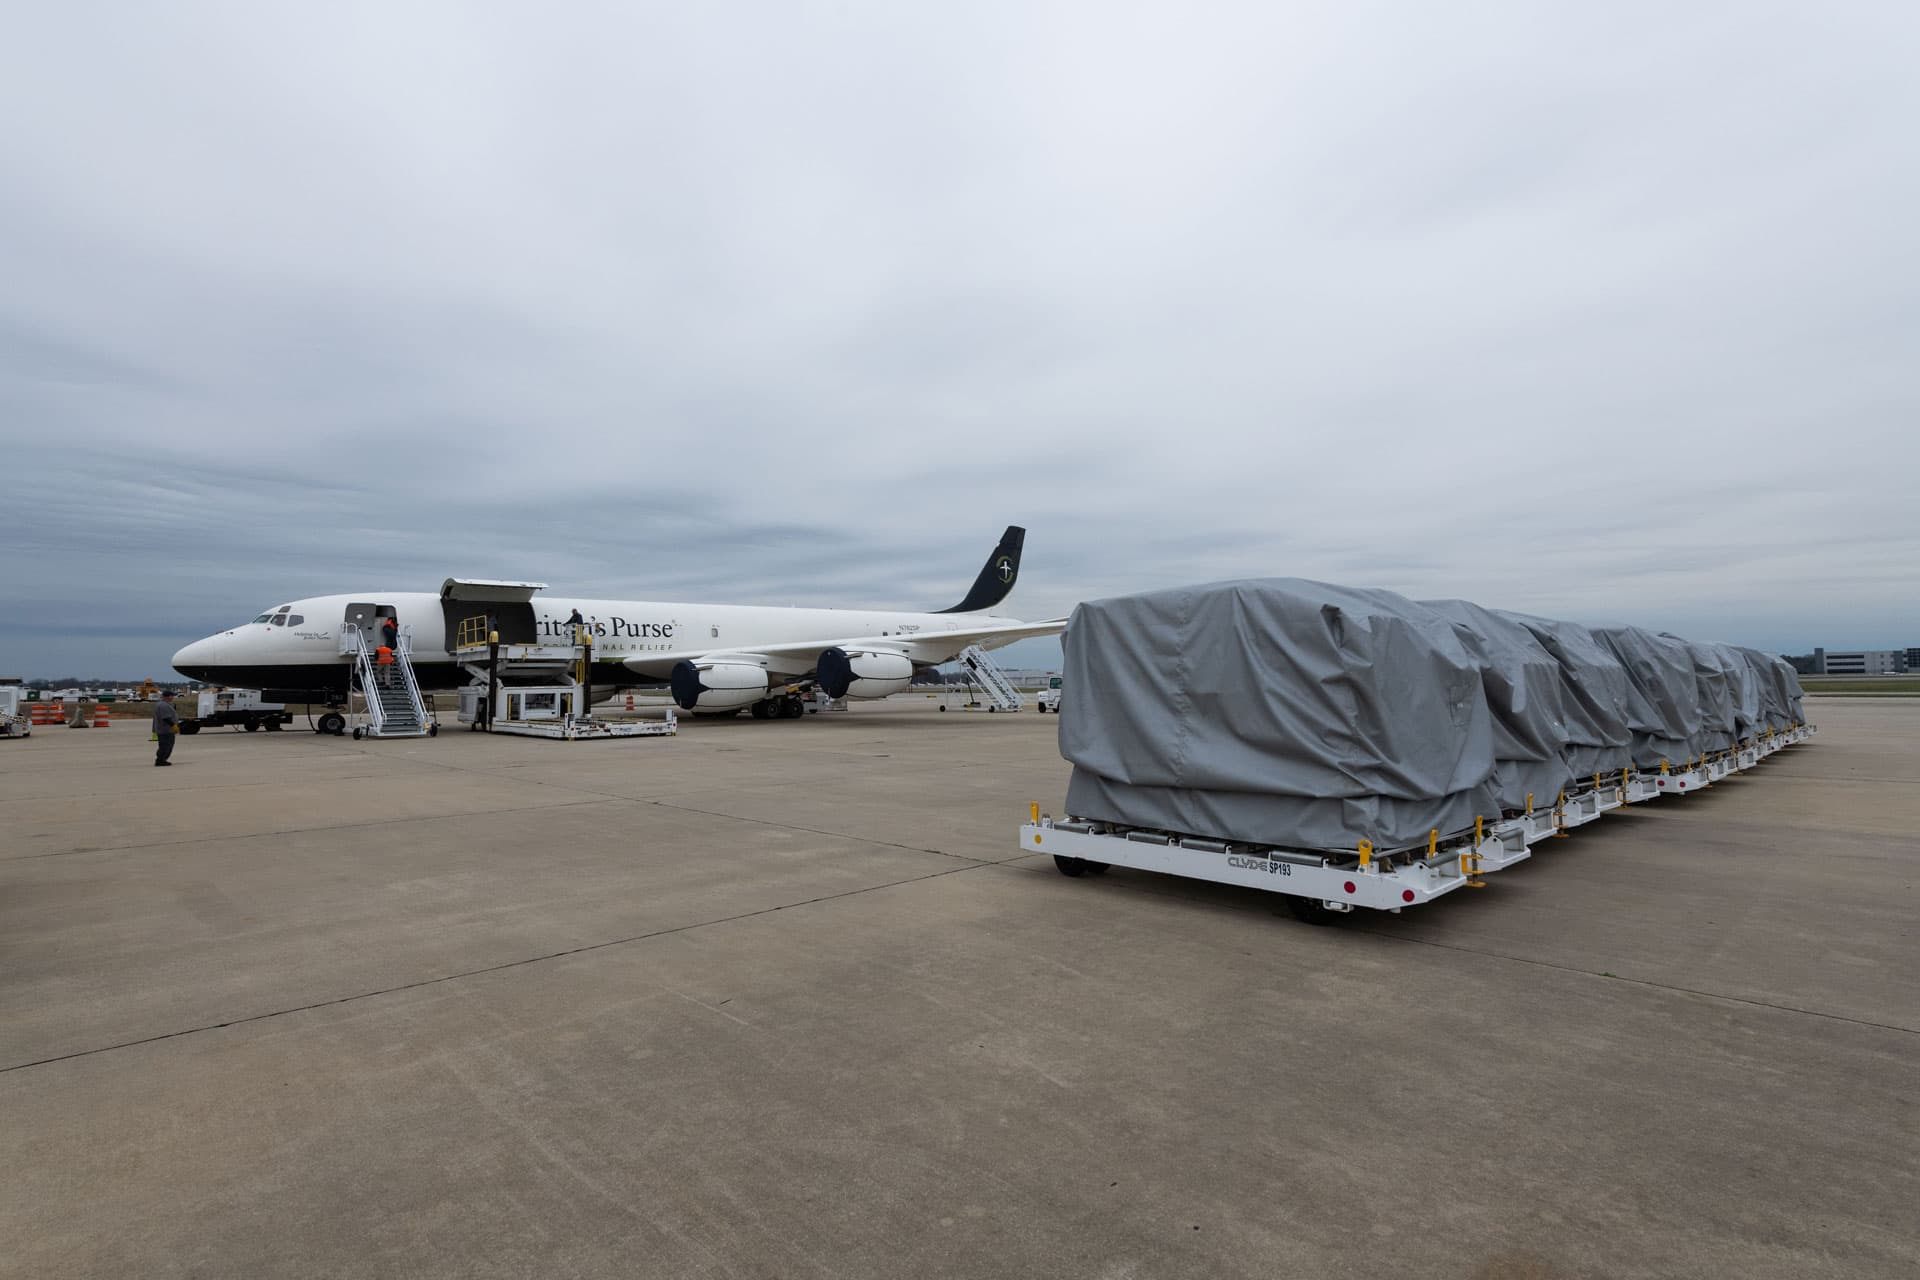 Medical supplies aboard the Samaritan's Purse DC-8 were airlifted to the coronavirus epicenter in northern Italy.